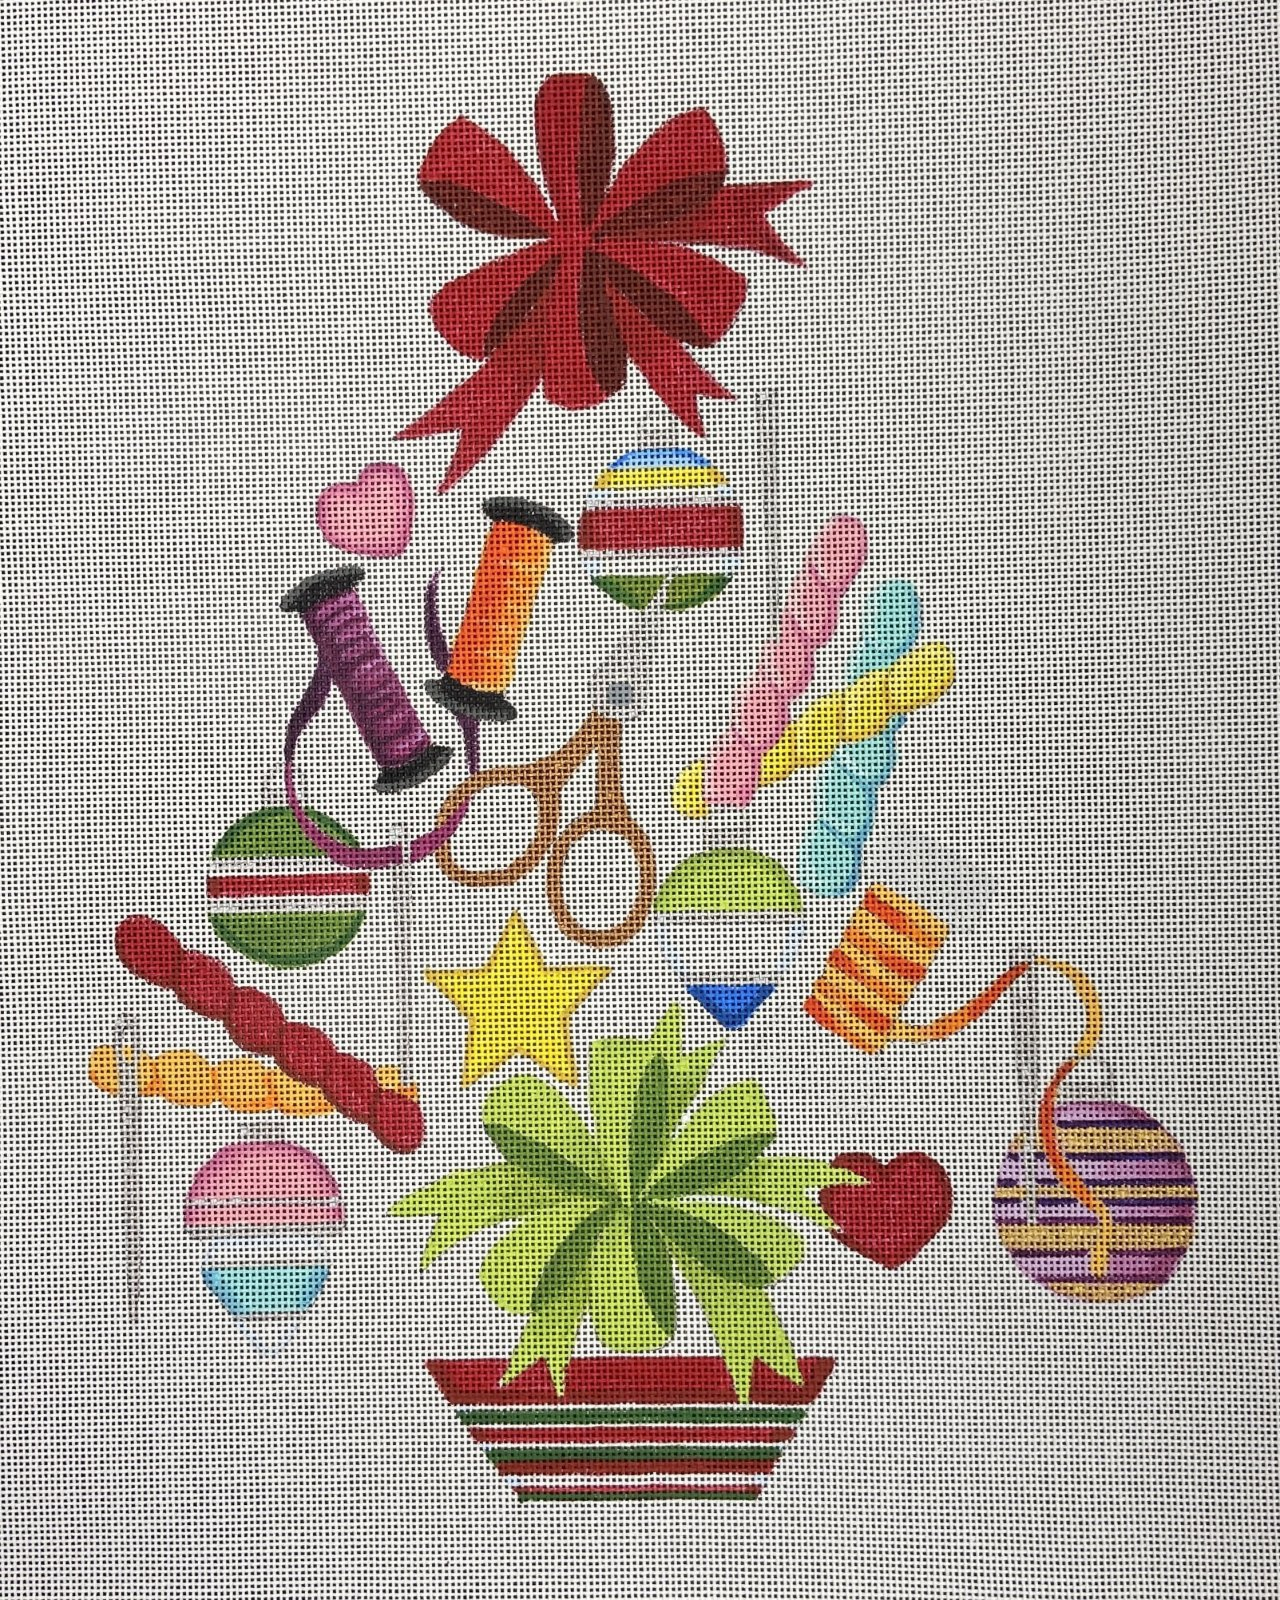 HO1345 Christmas Tree with Stitching Tools and Threads Raymond Crawford